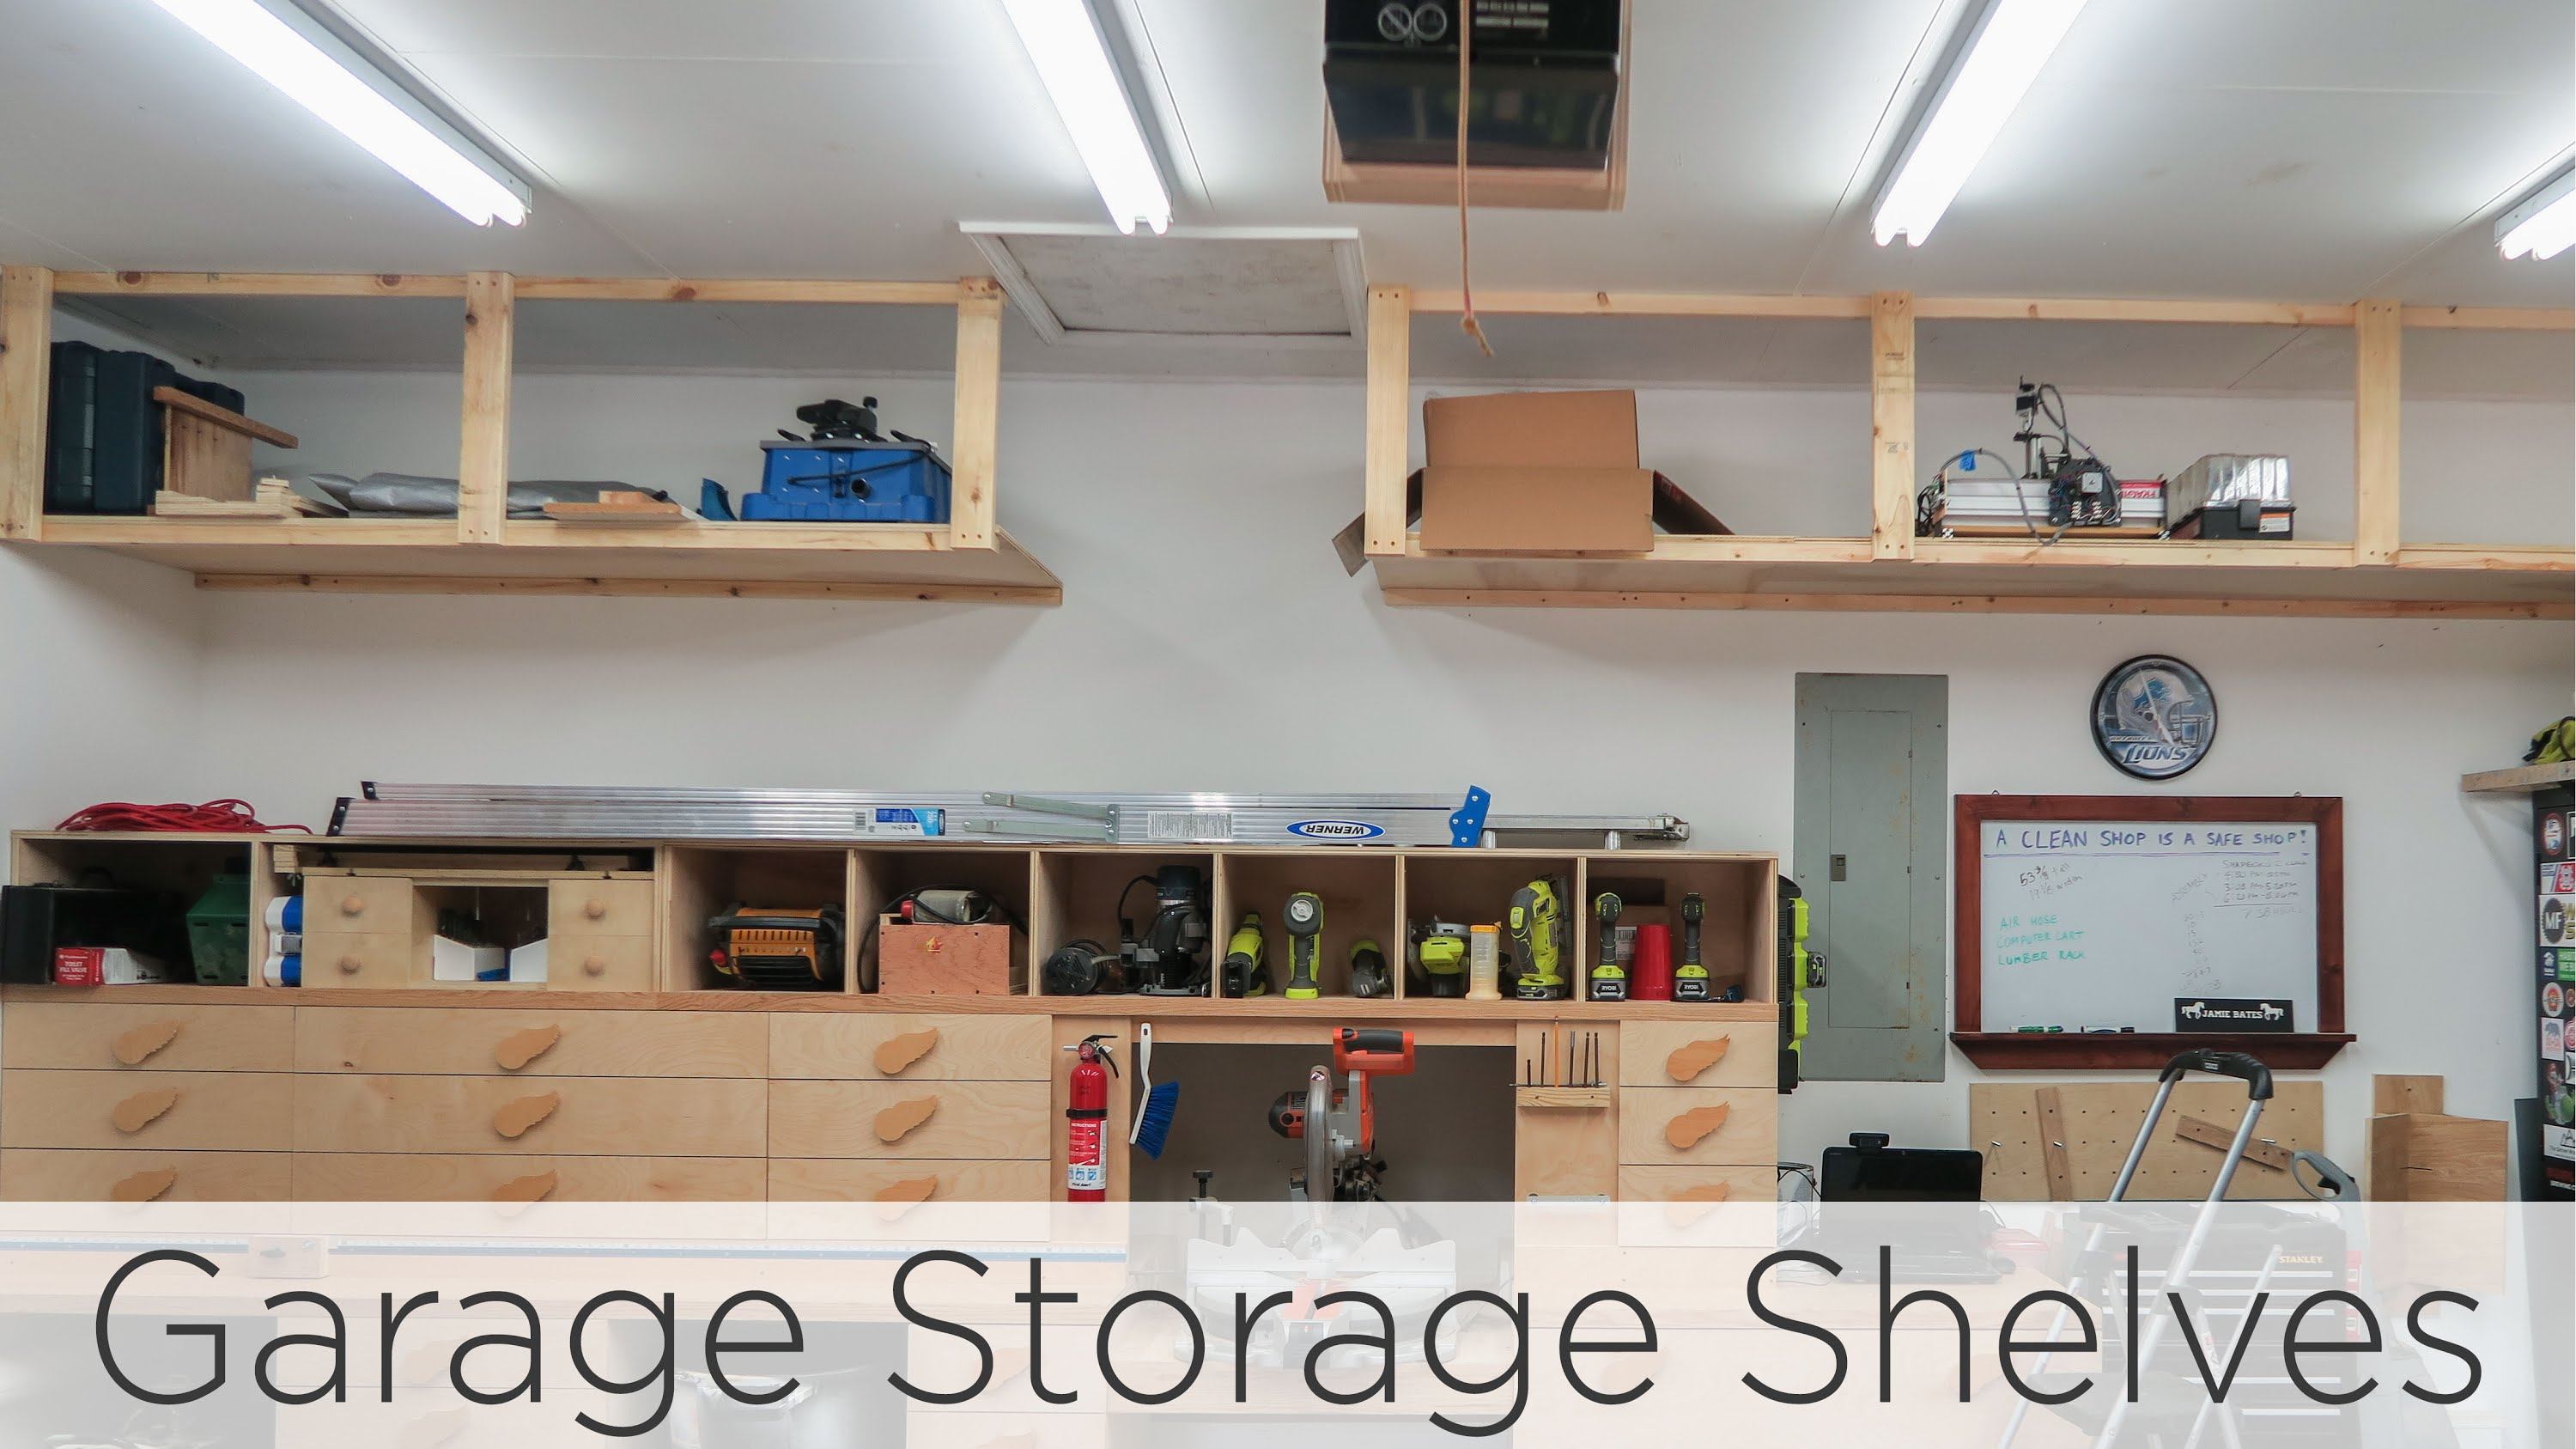 wasted space garage storage shelves - 202 - youtube CGBXHYF